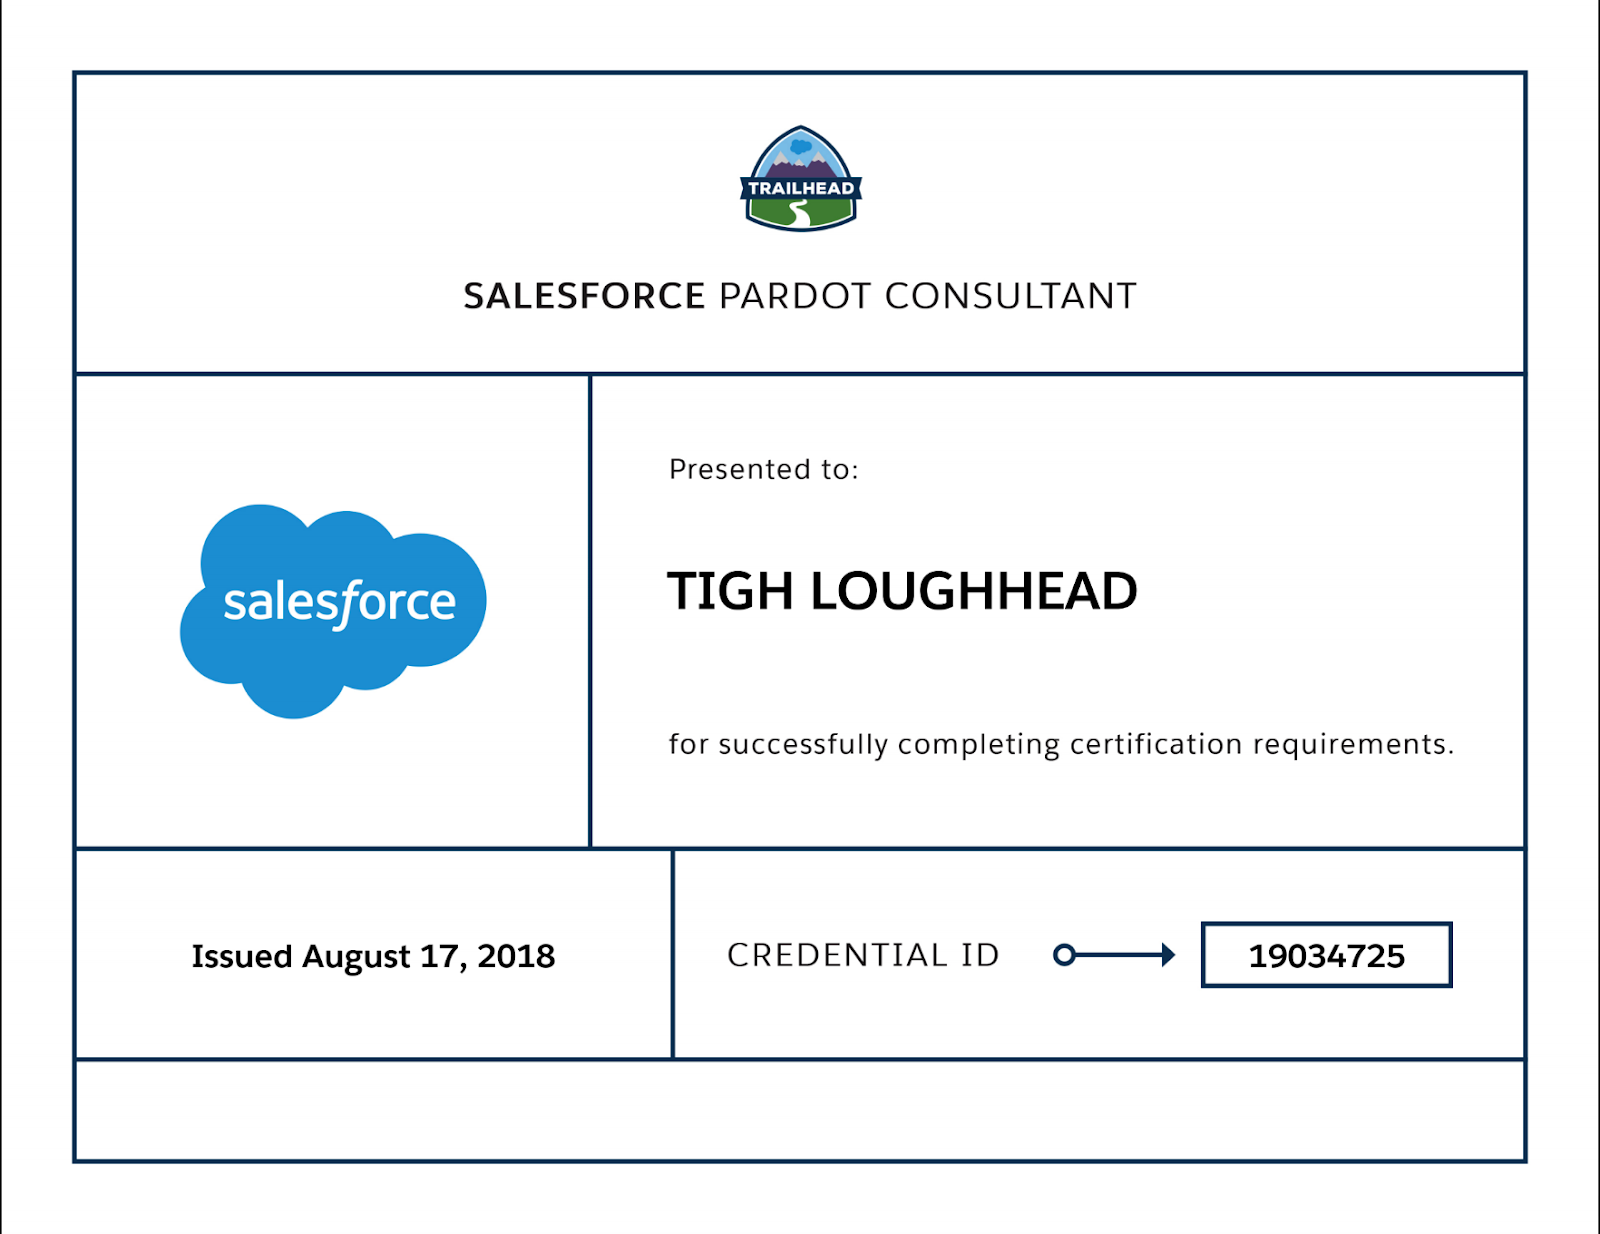 Tigh Loughhead is a Certified Salesforce Pardot Consultant